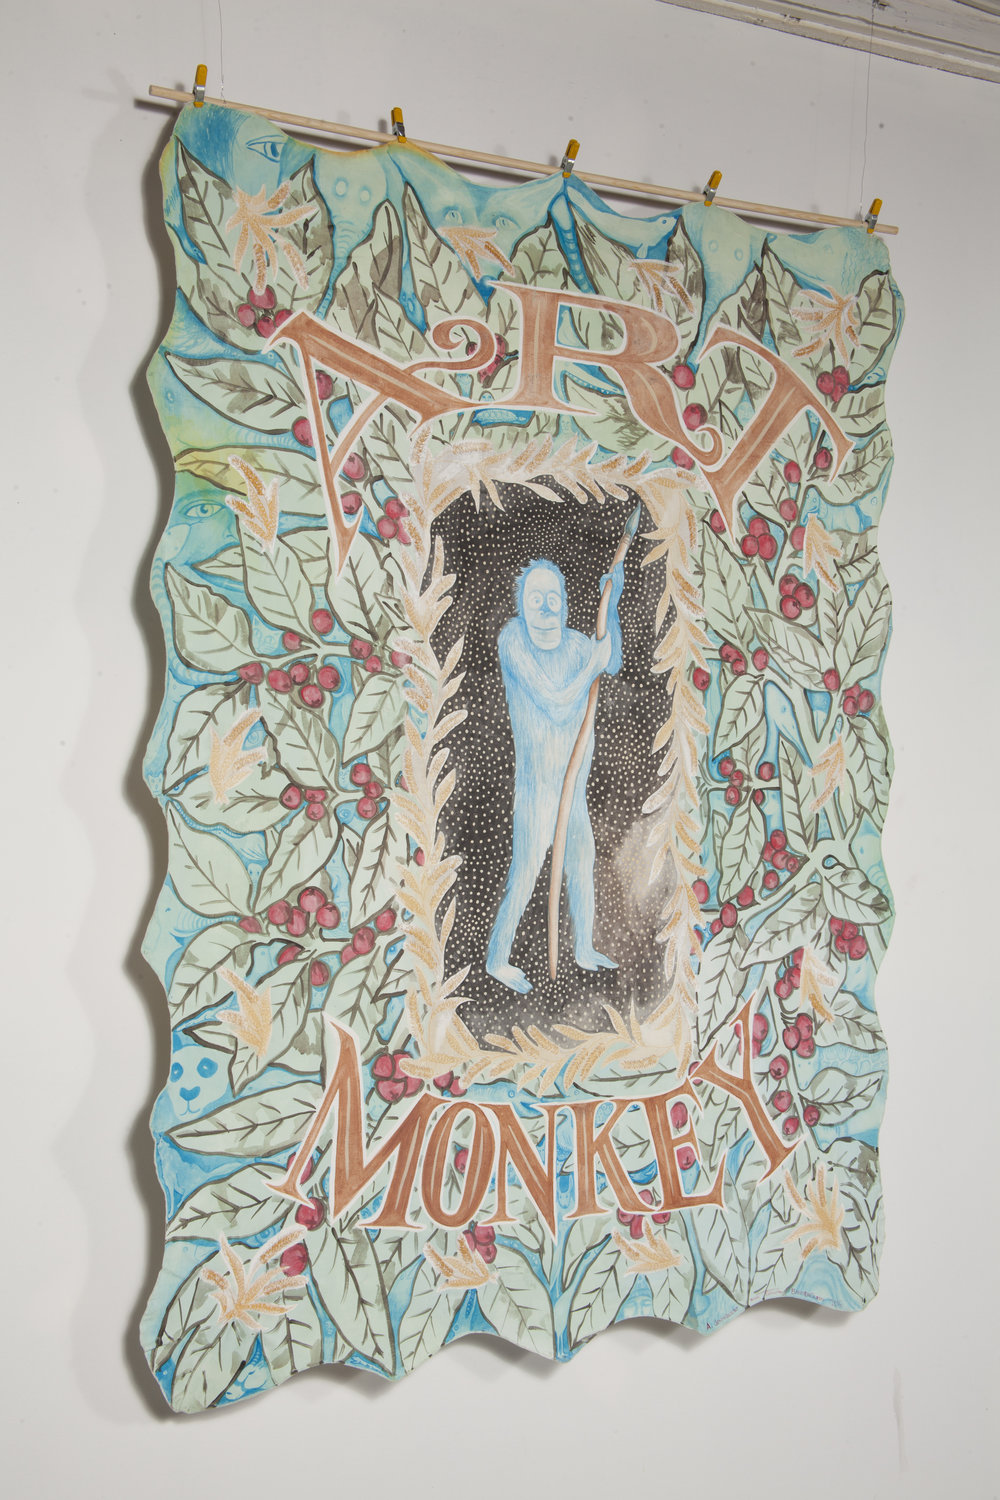 Amy Johnquest | Art Monkey | 2016 | Casien & acrylic on vintage tablecloth